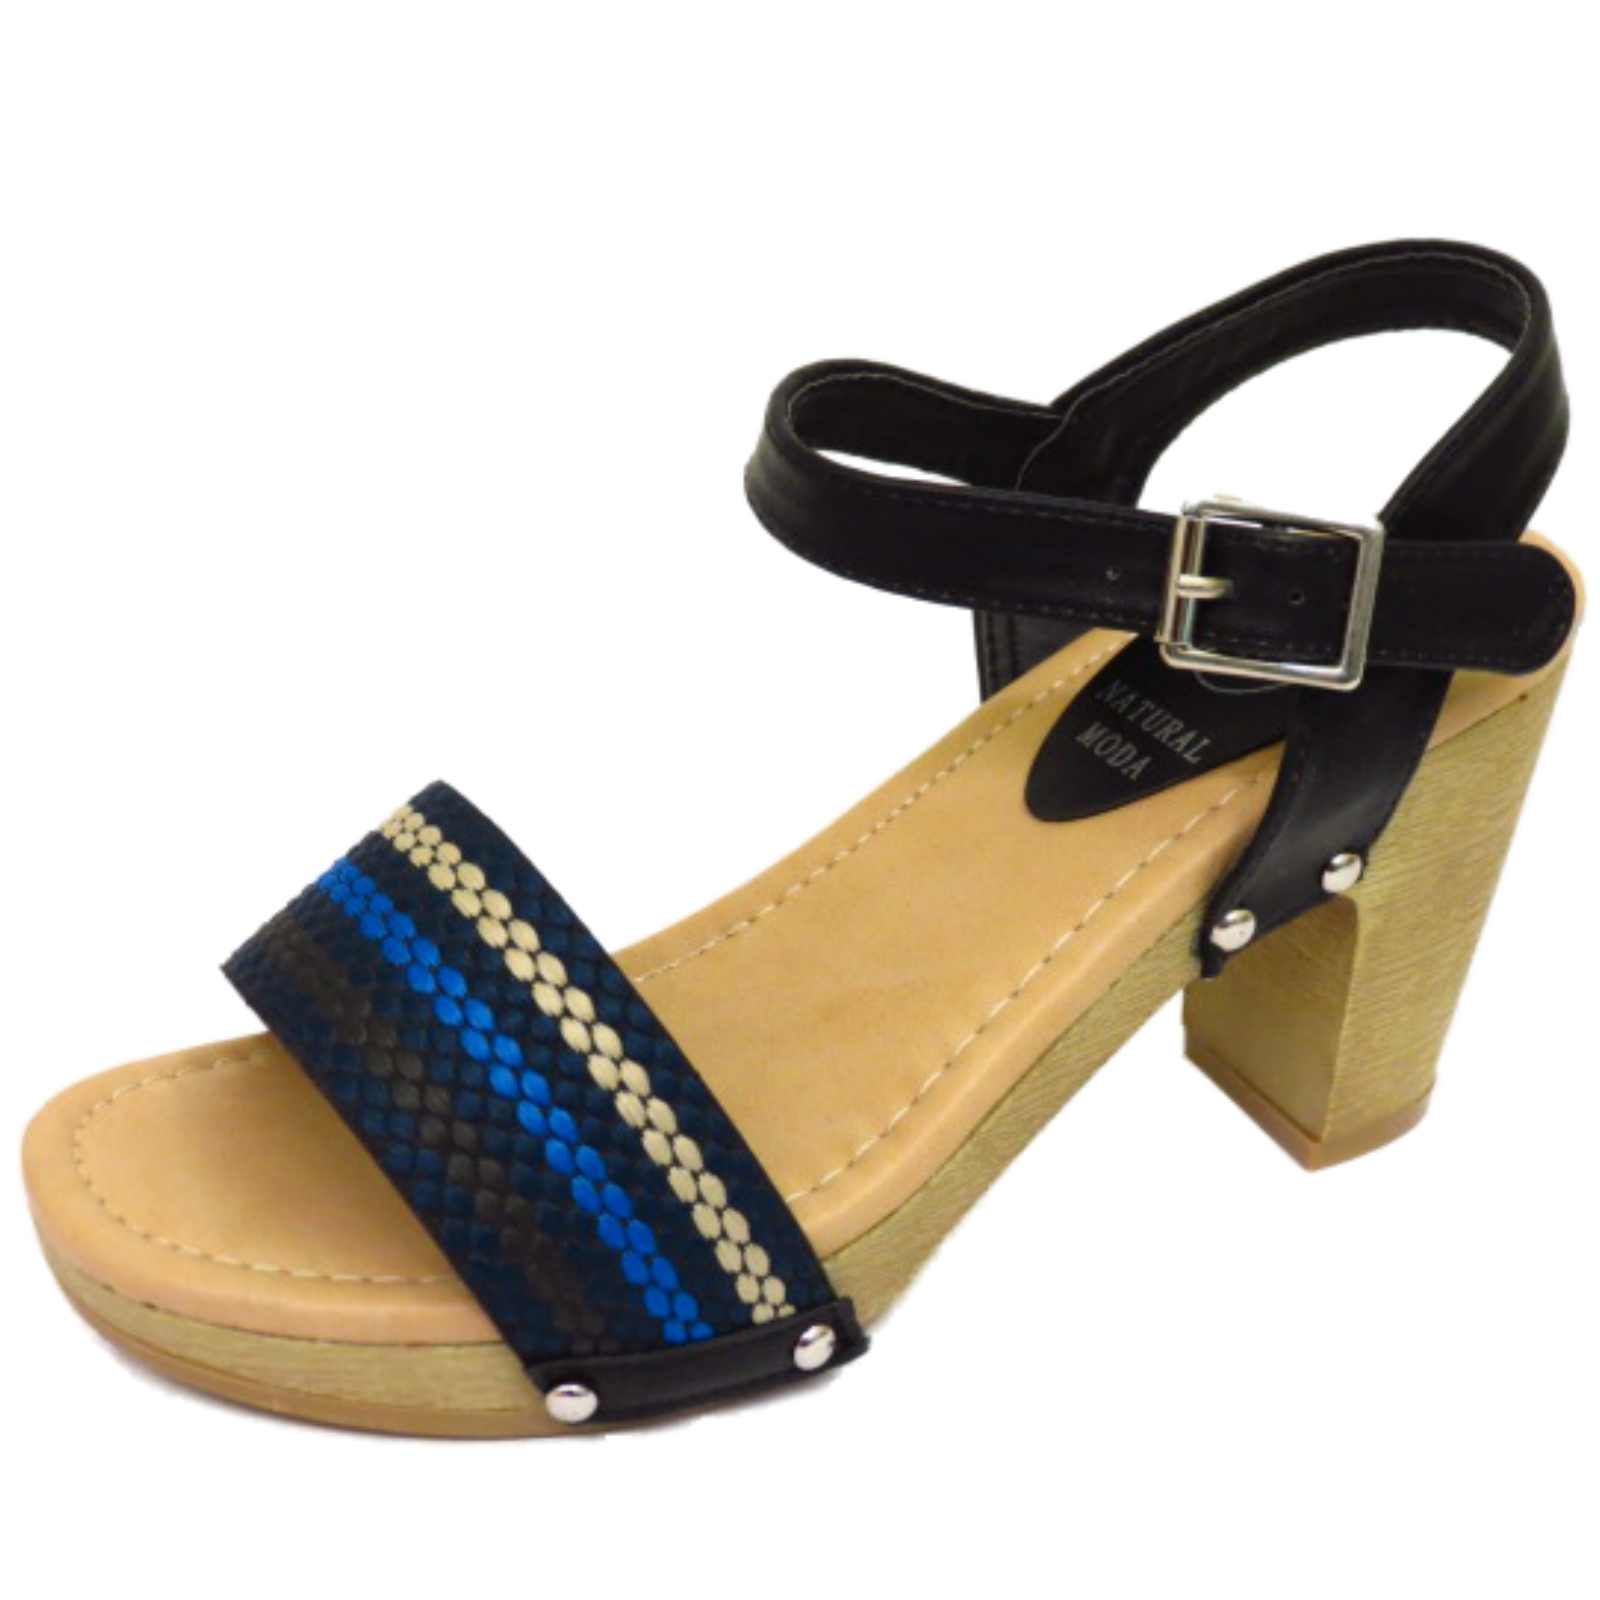 Black sandals holiday - Womens Black Slip On Peep Toe Strappy Shoes